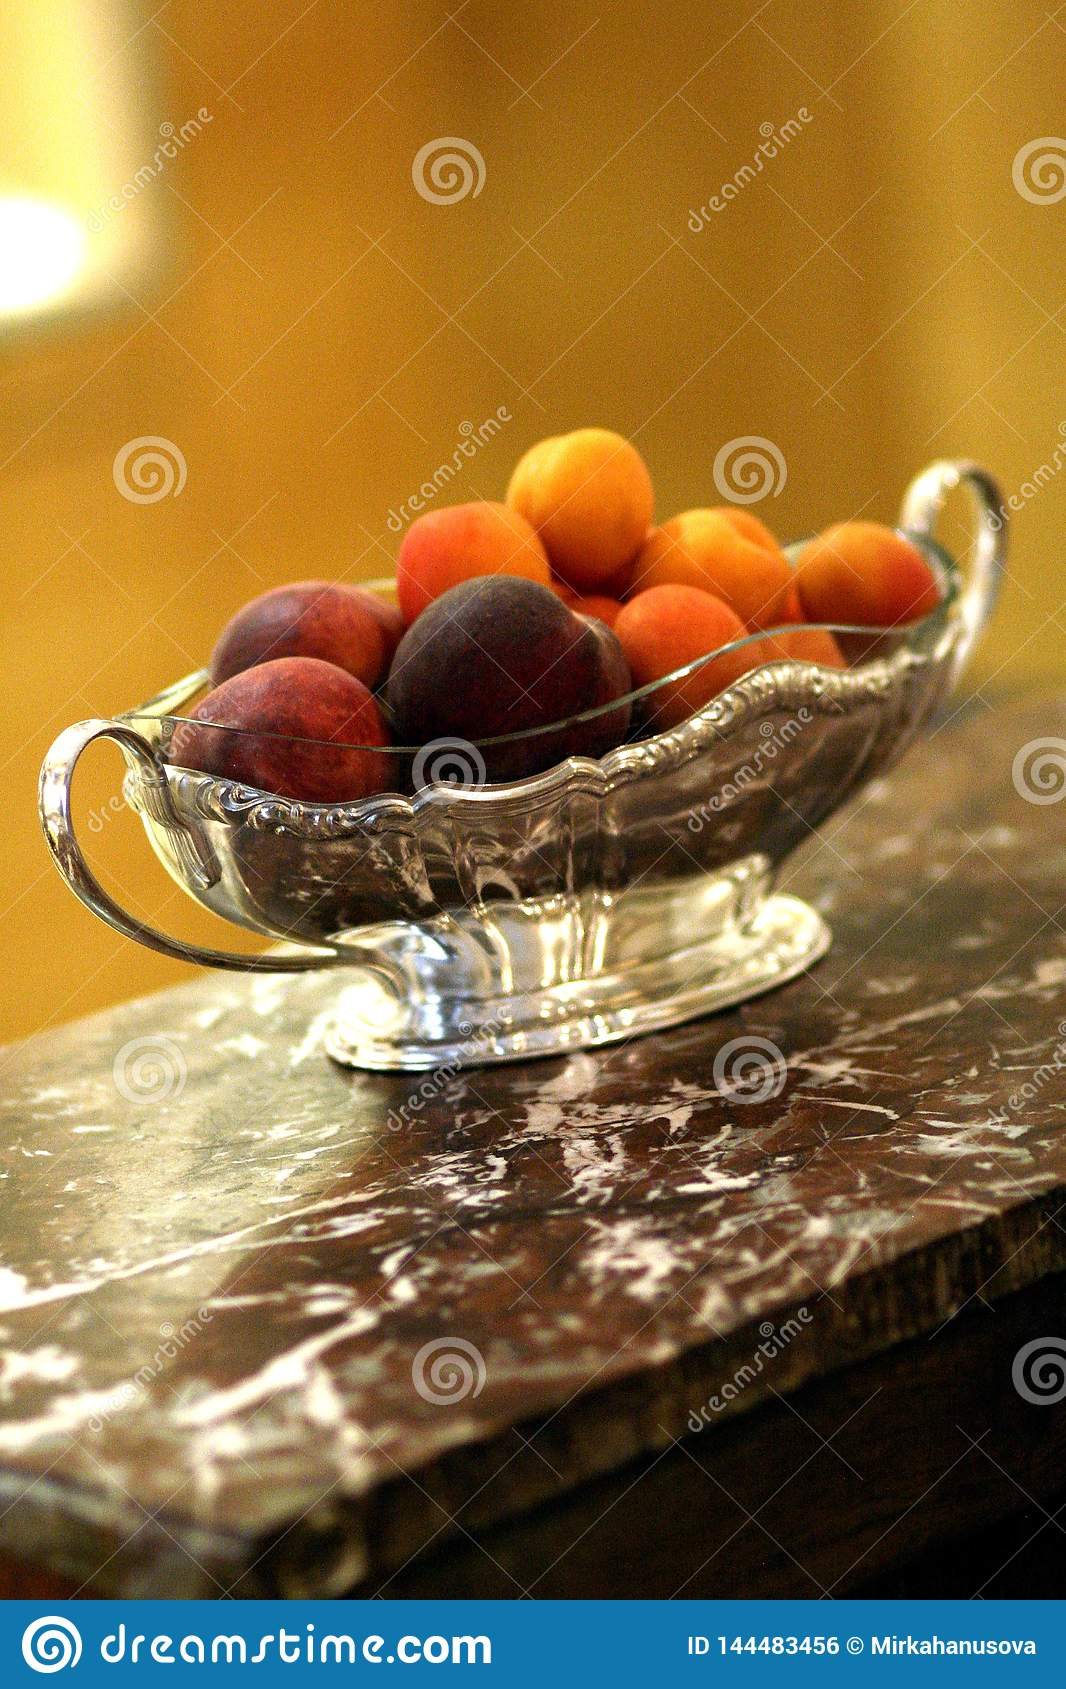 Antique Silver Bowl With Fruit On Dark Red Marble Desk Stock Photo Image Of Czech Decor 144483456